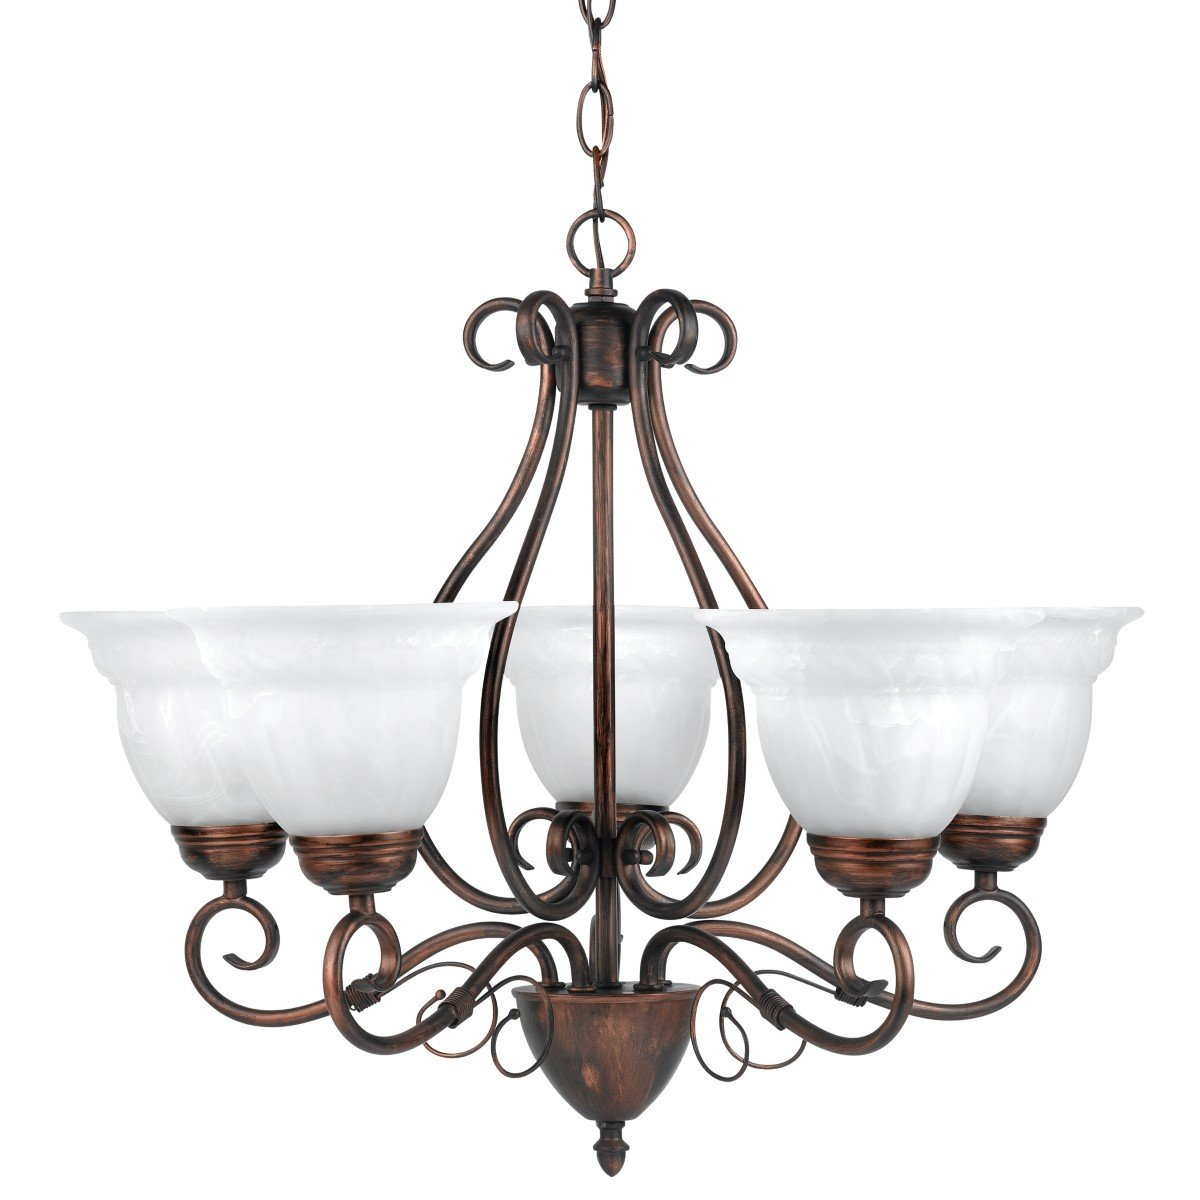 Globe Electric 65573 Beatrice 5 Light Candelier, Large, 22.5'' x 22.5'' x 19.75'', Weathered Bronze